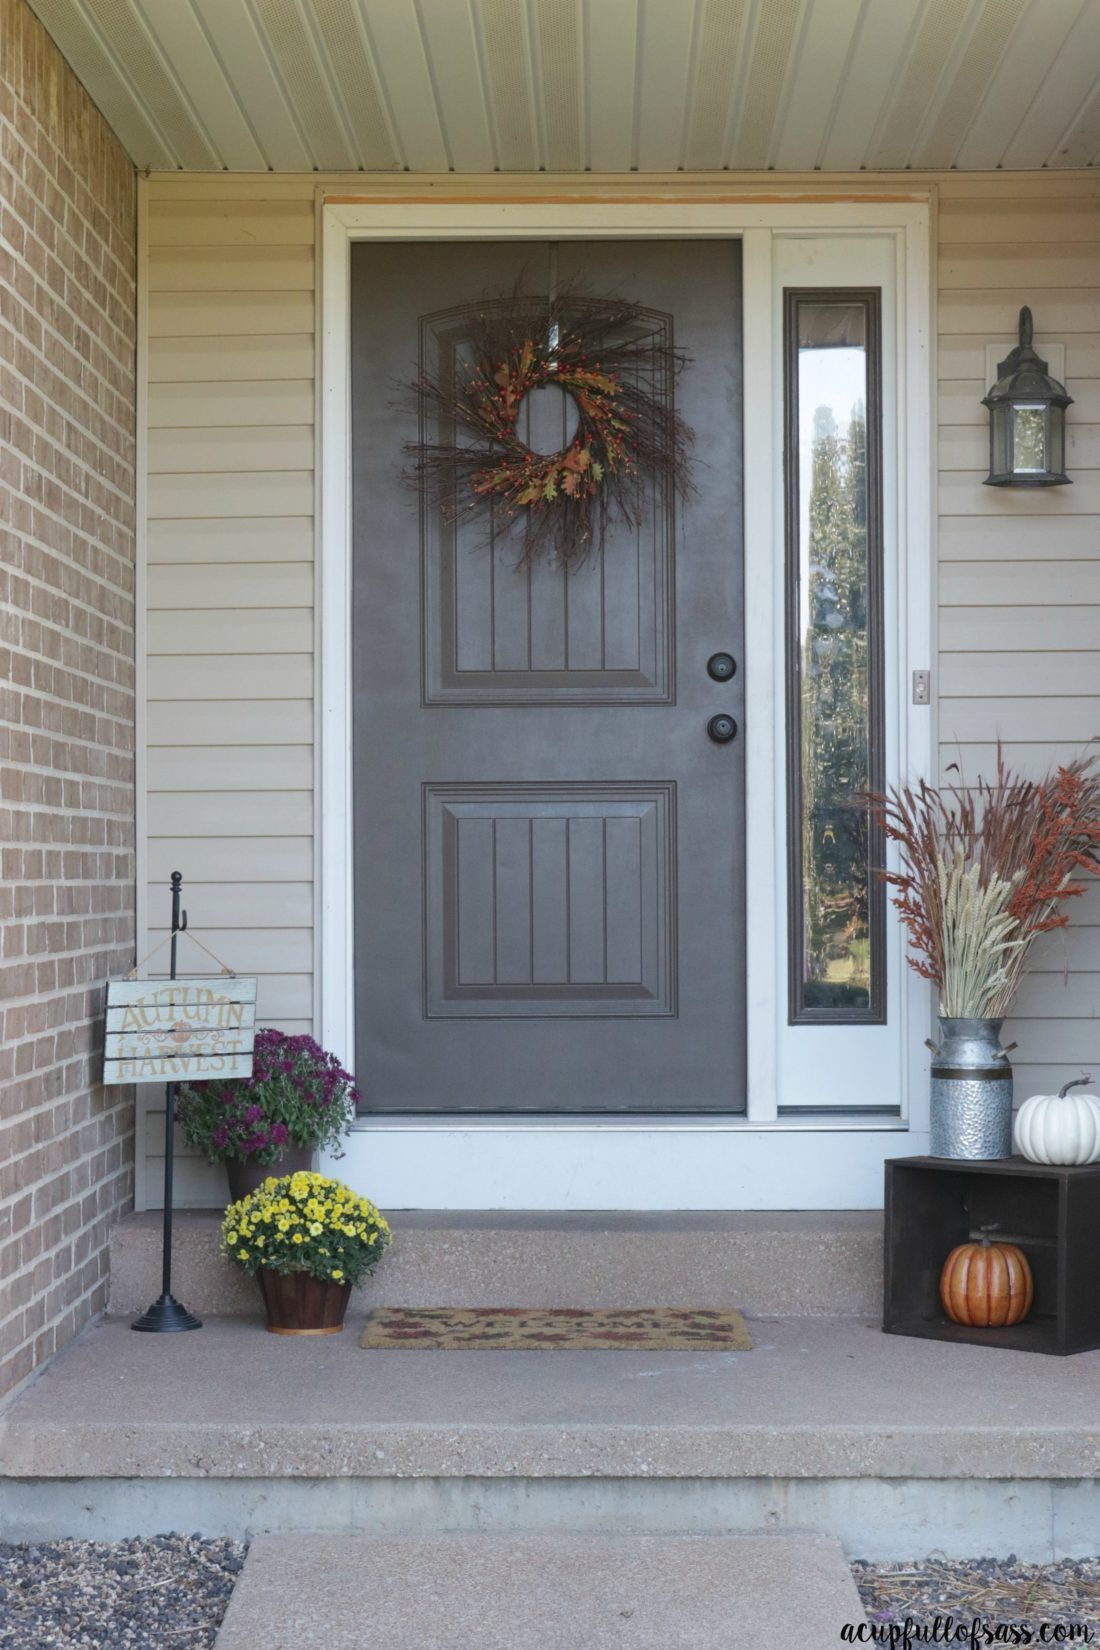 Fall Harvest Porch Decorations